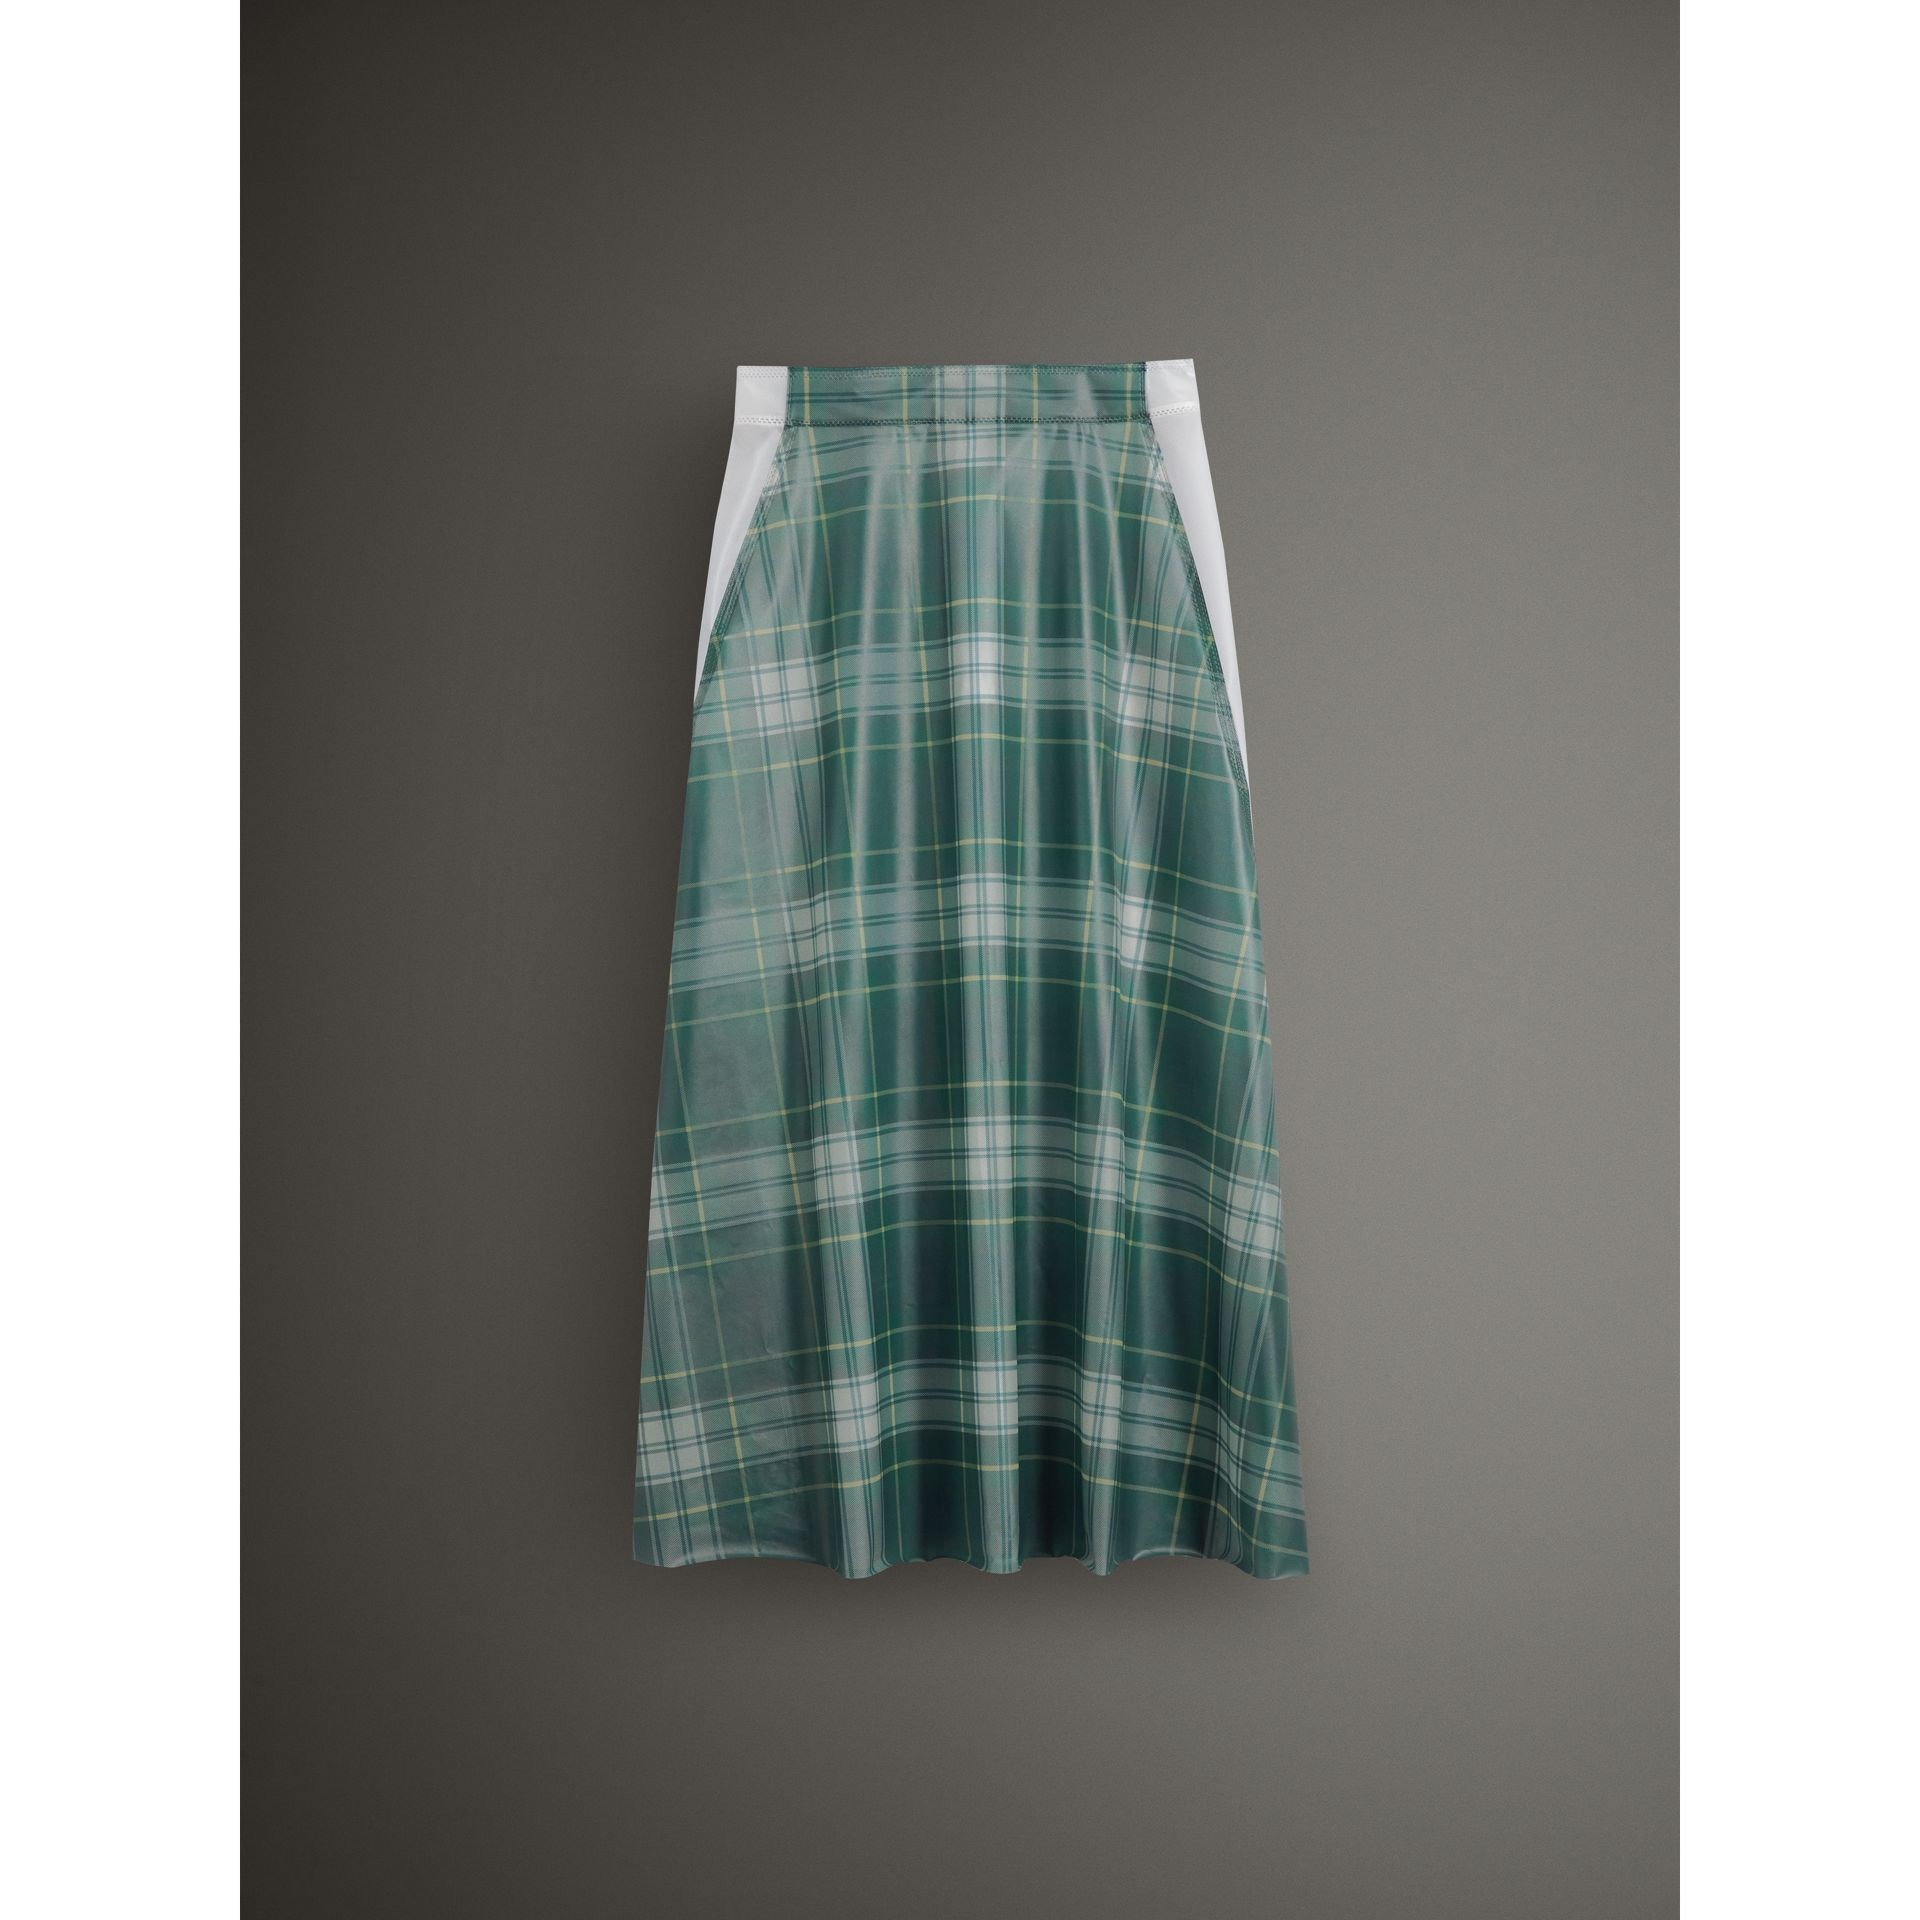 Silk-lined Tartan Plastic A-line Skirt in Green - Women | Burberry - gallery image 3